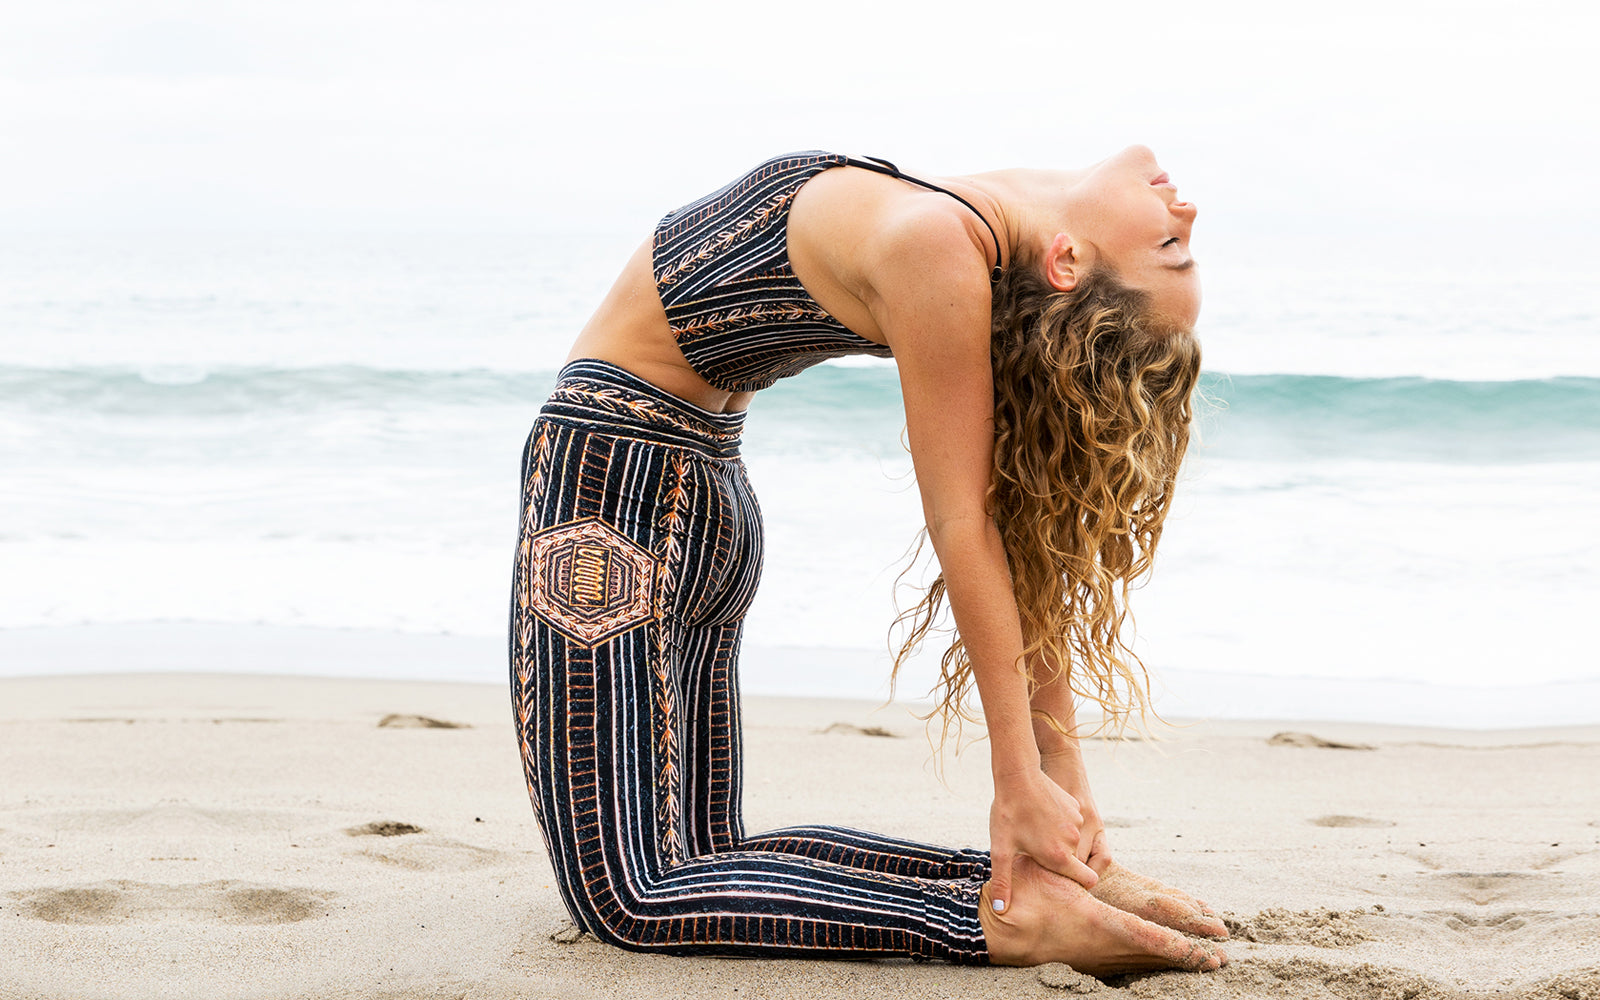 Wolven sustainable activewear world oceans month day eco friendly yoga pants